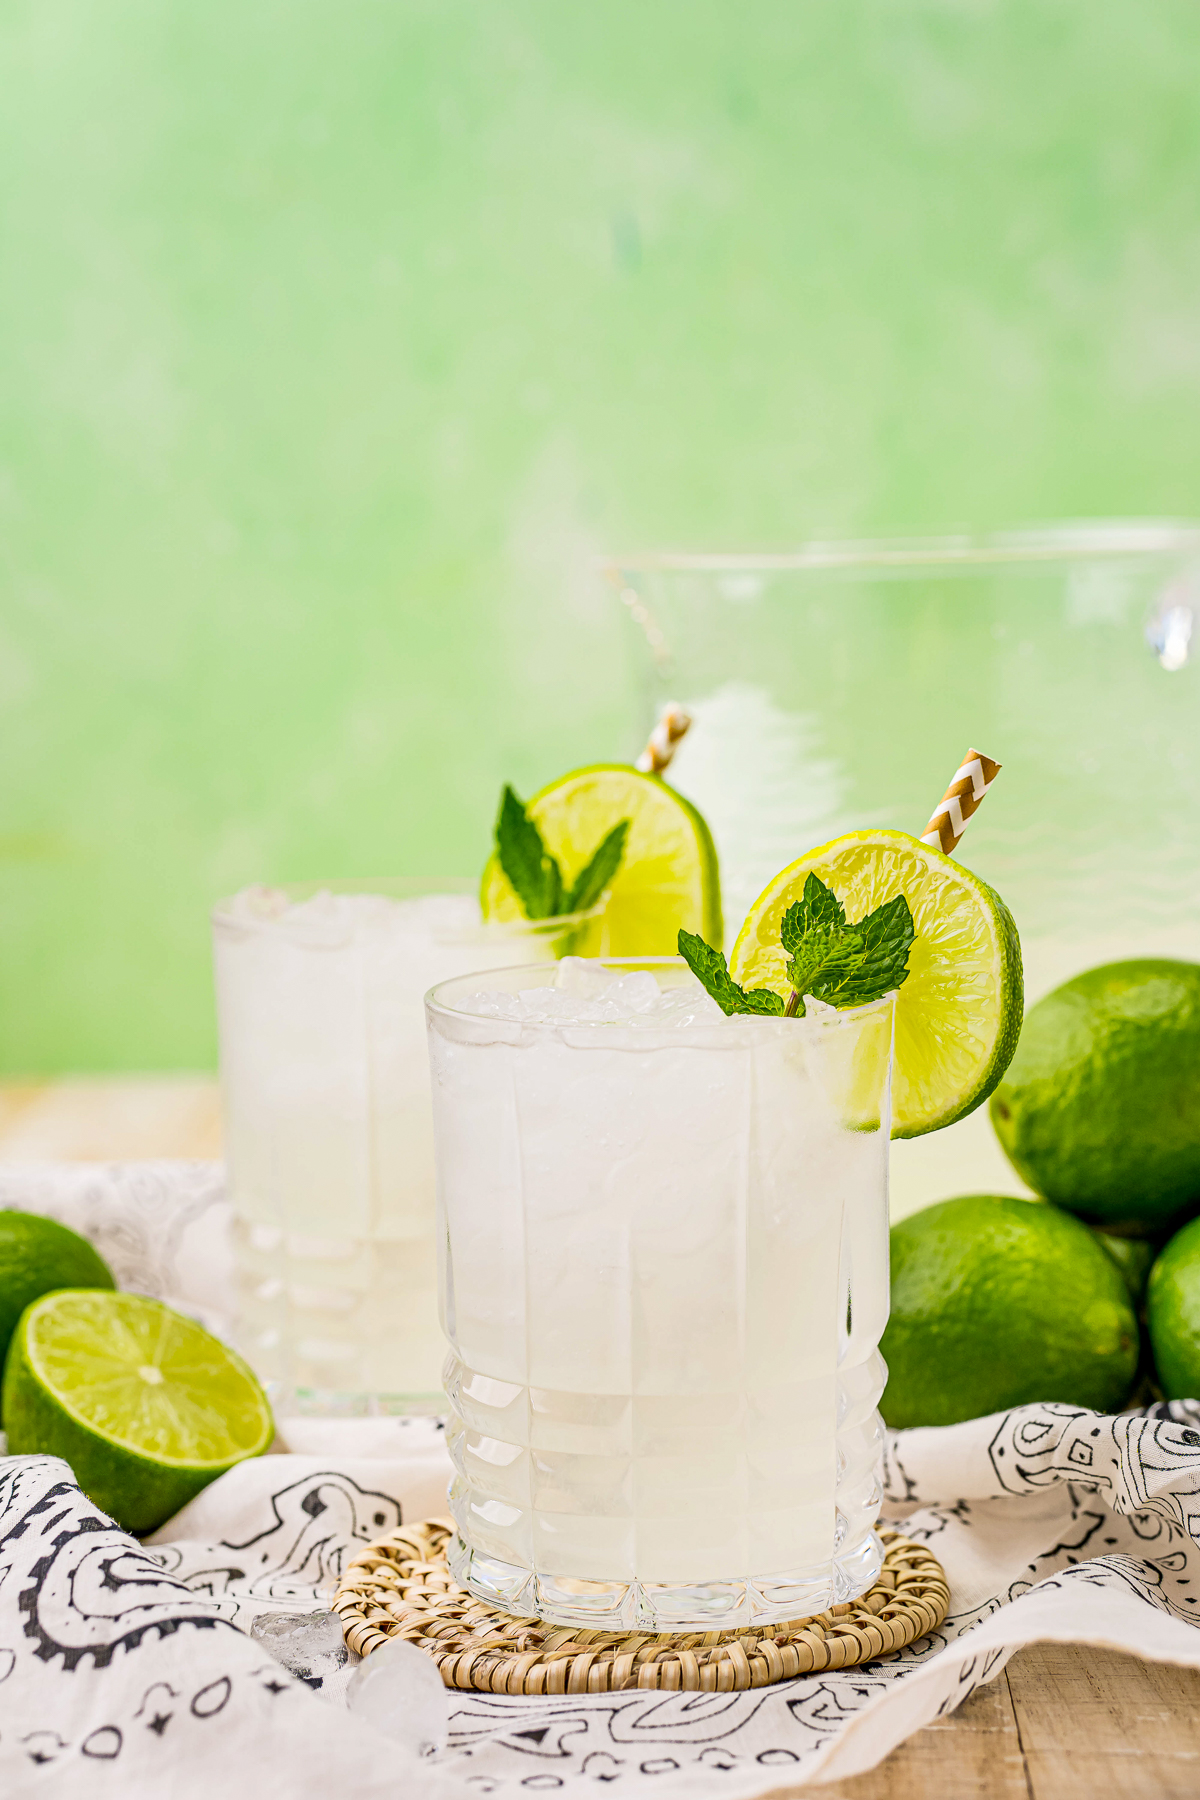 Two glasses of Limeade garnished with mint and lime